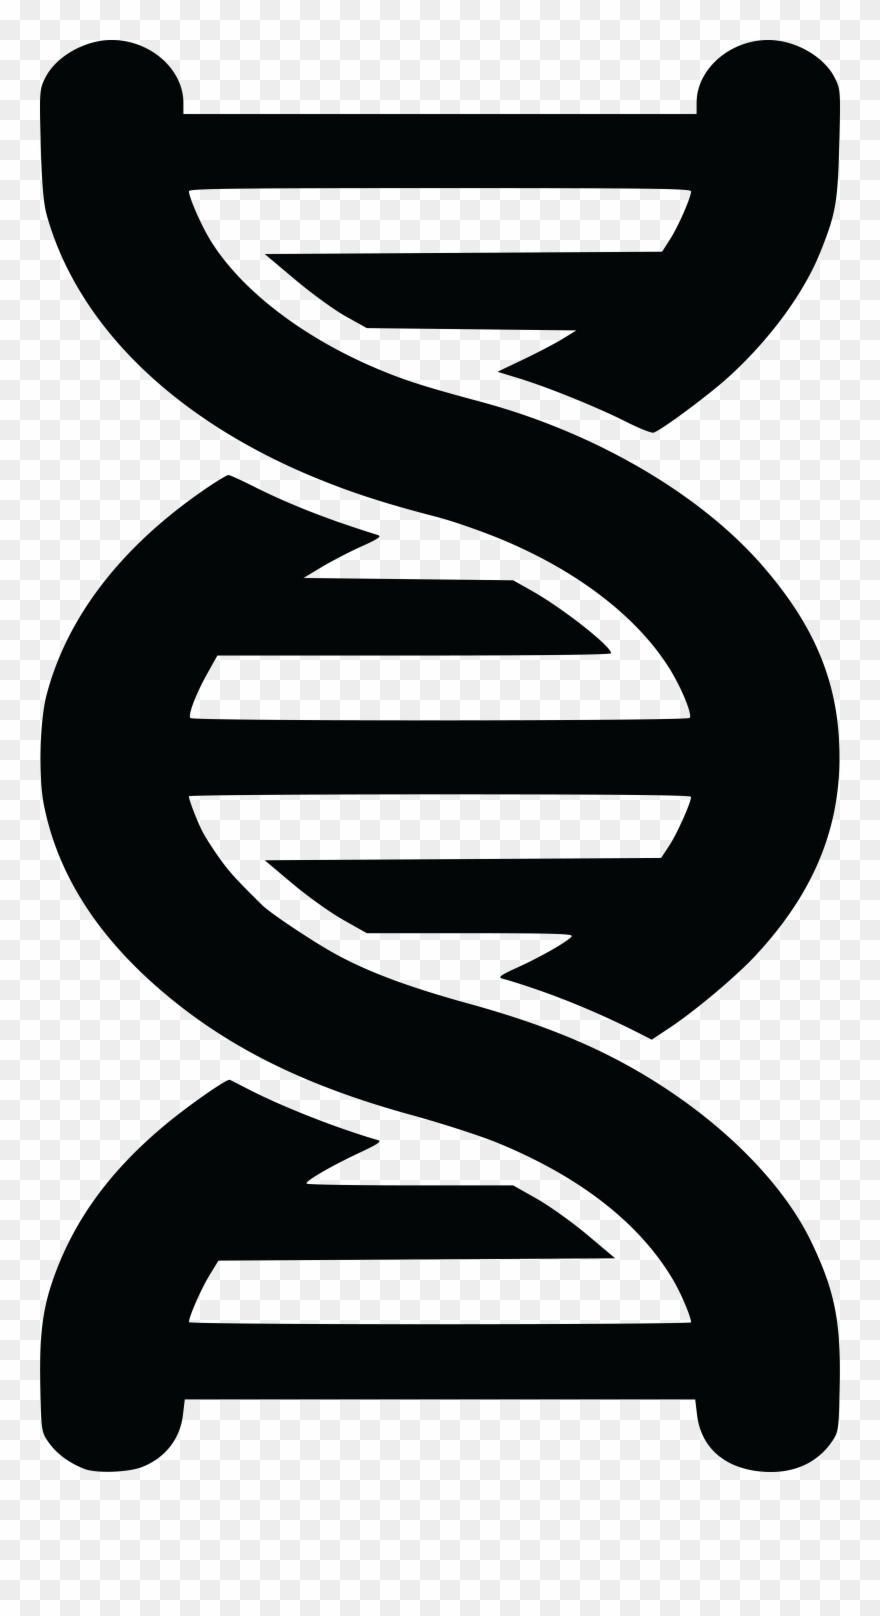 Dna clipart black and white. Free of a strand